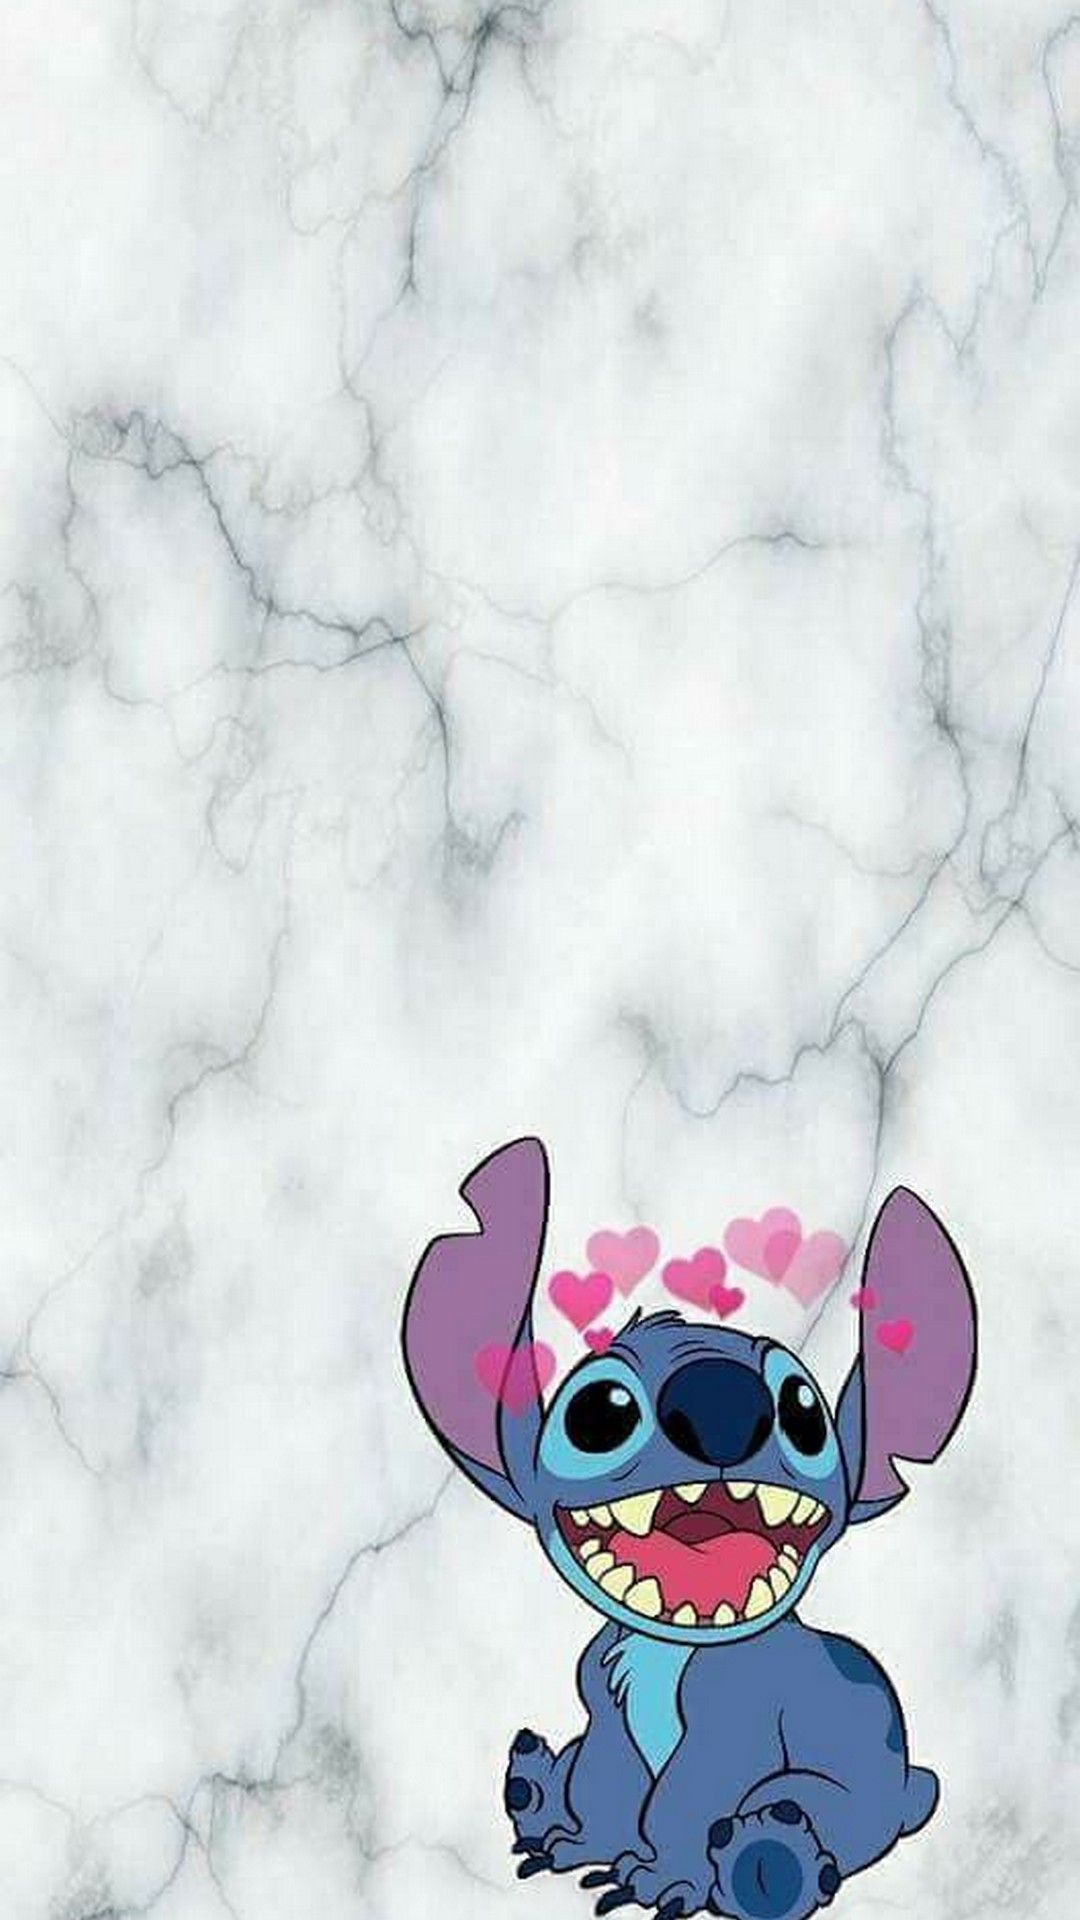 Download Stitch Wallpaper Hd Backgrounds Download Itlcat